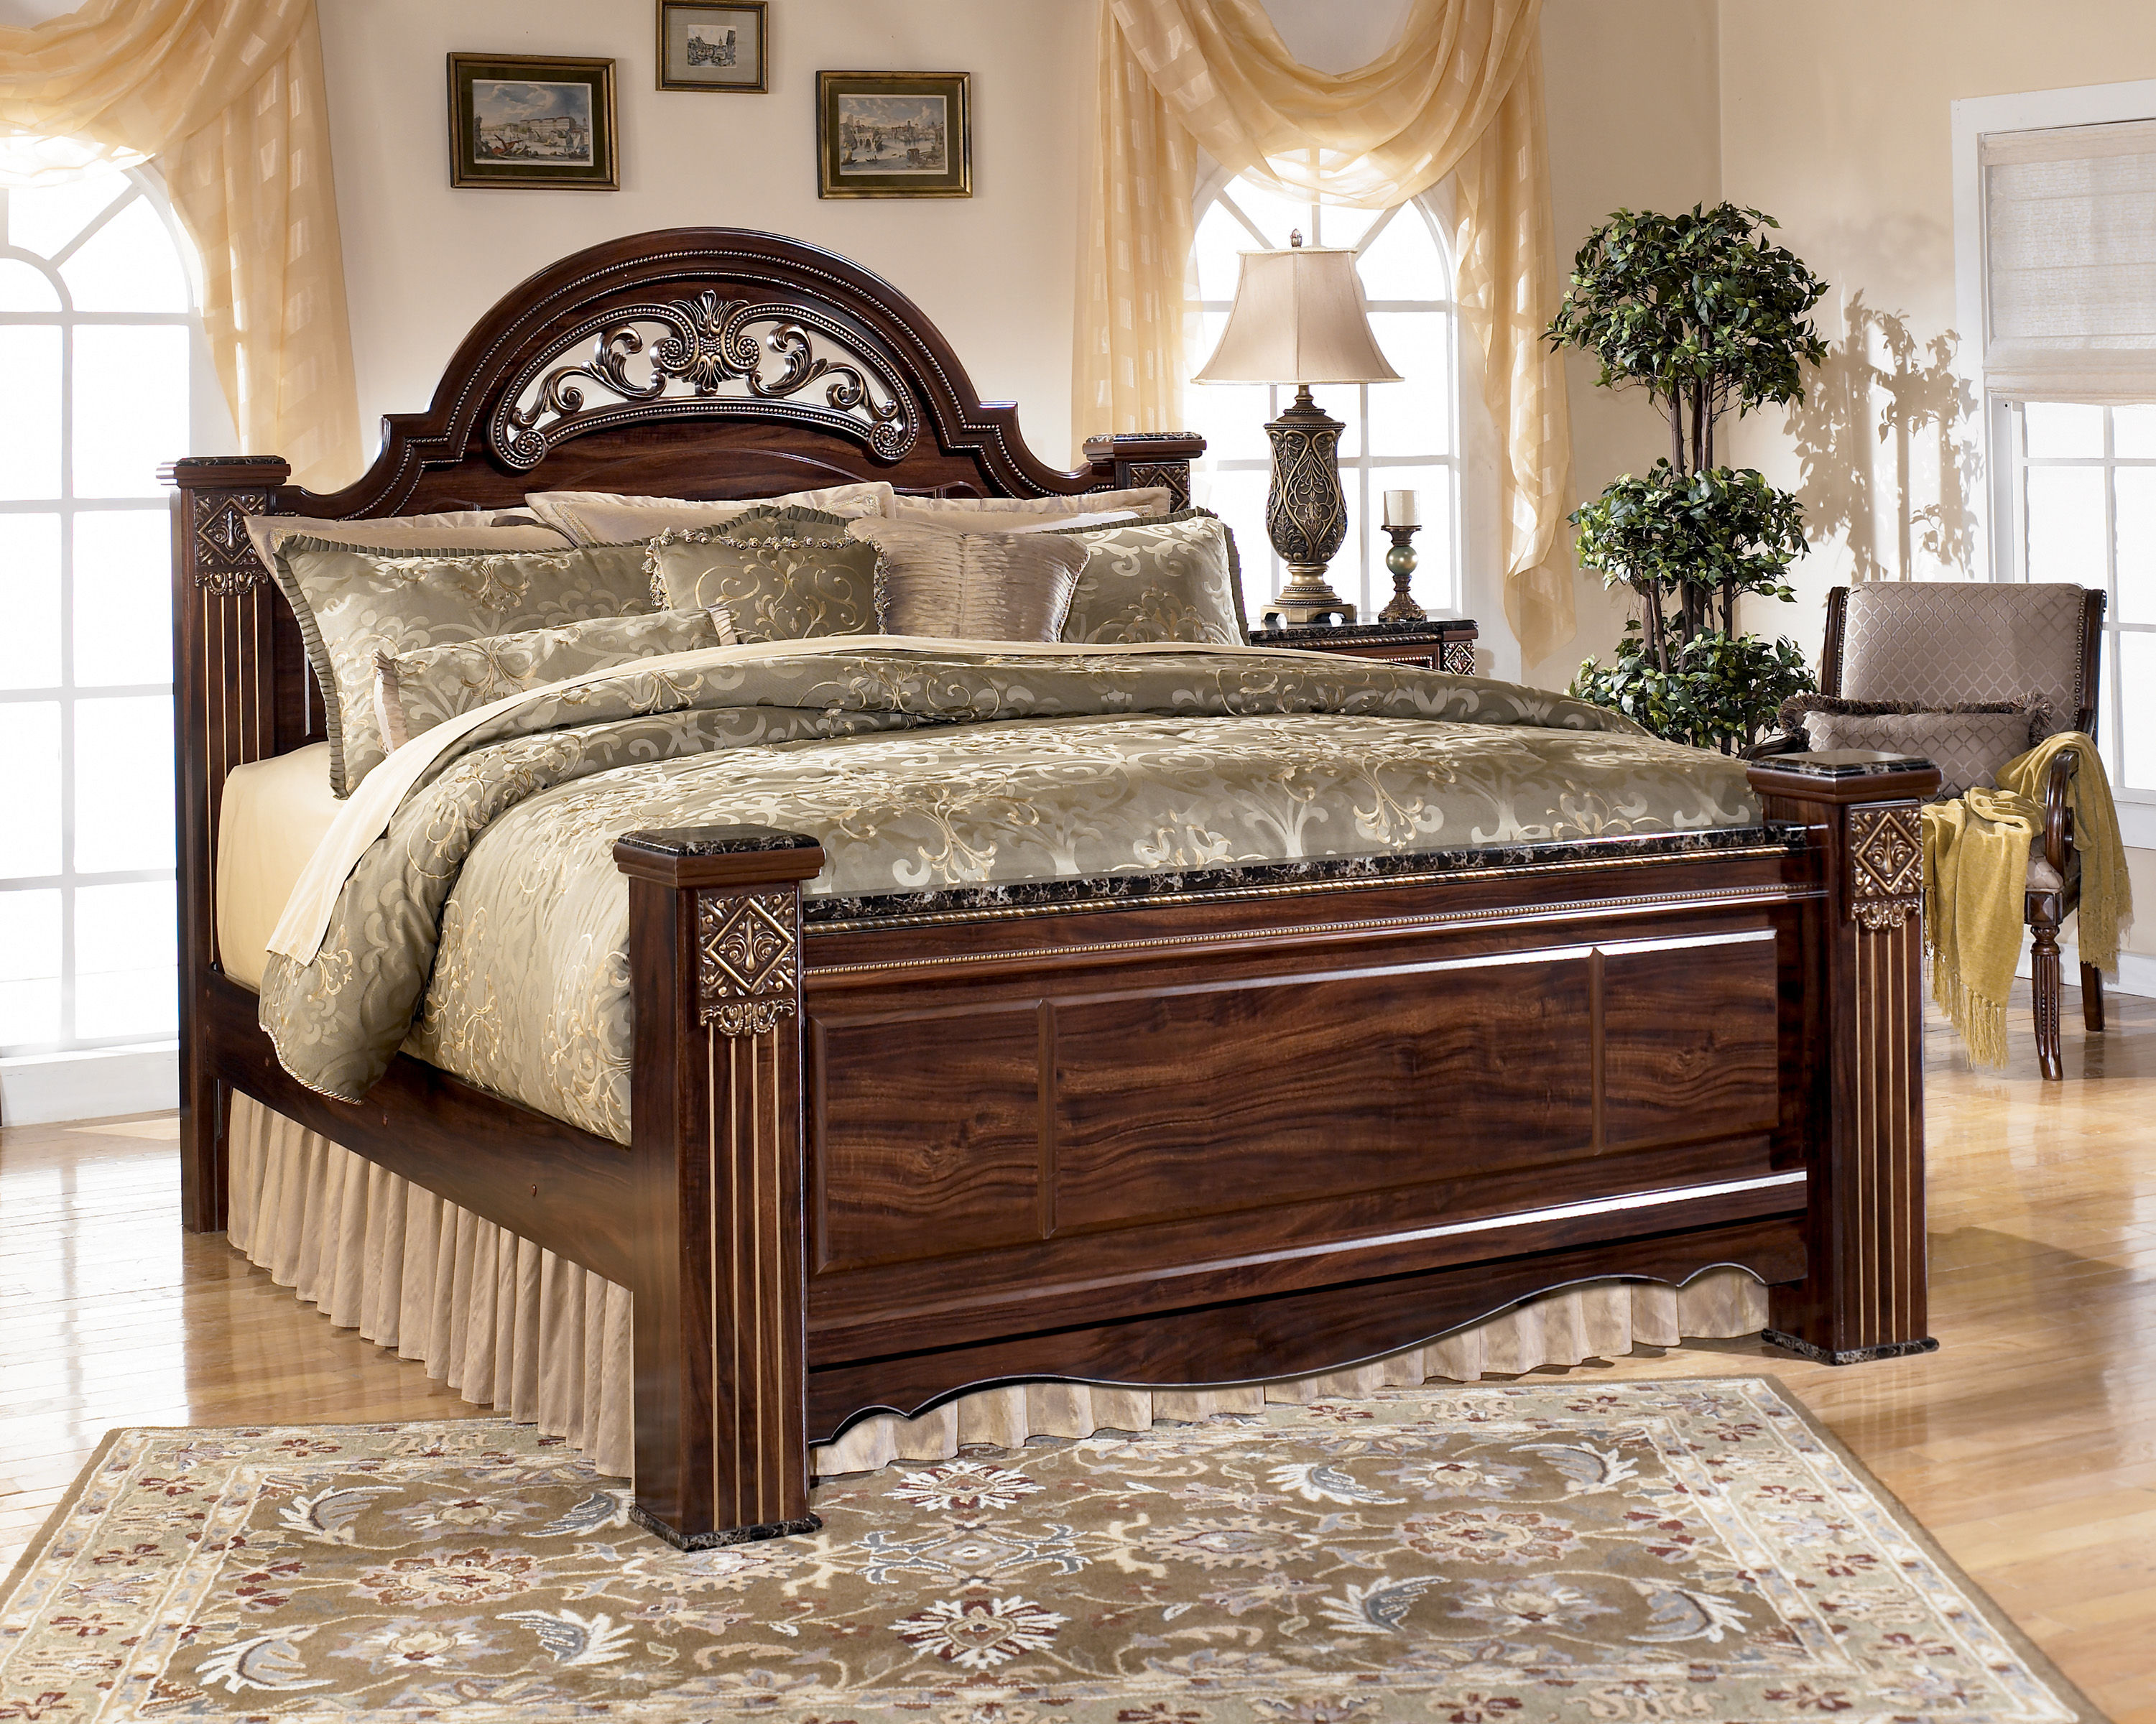 Ashley Furniture Gabriela Queen Poster Bed The Classy Home